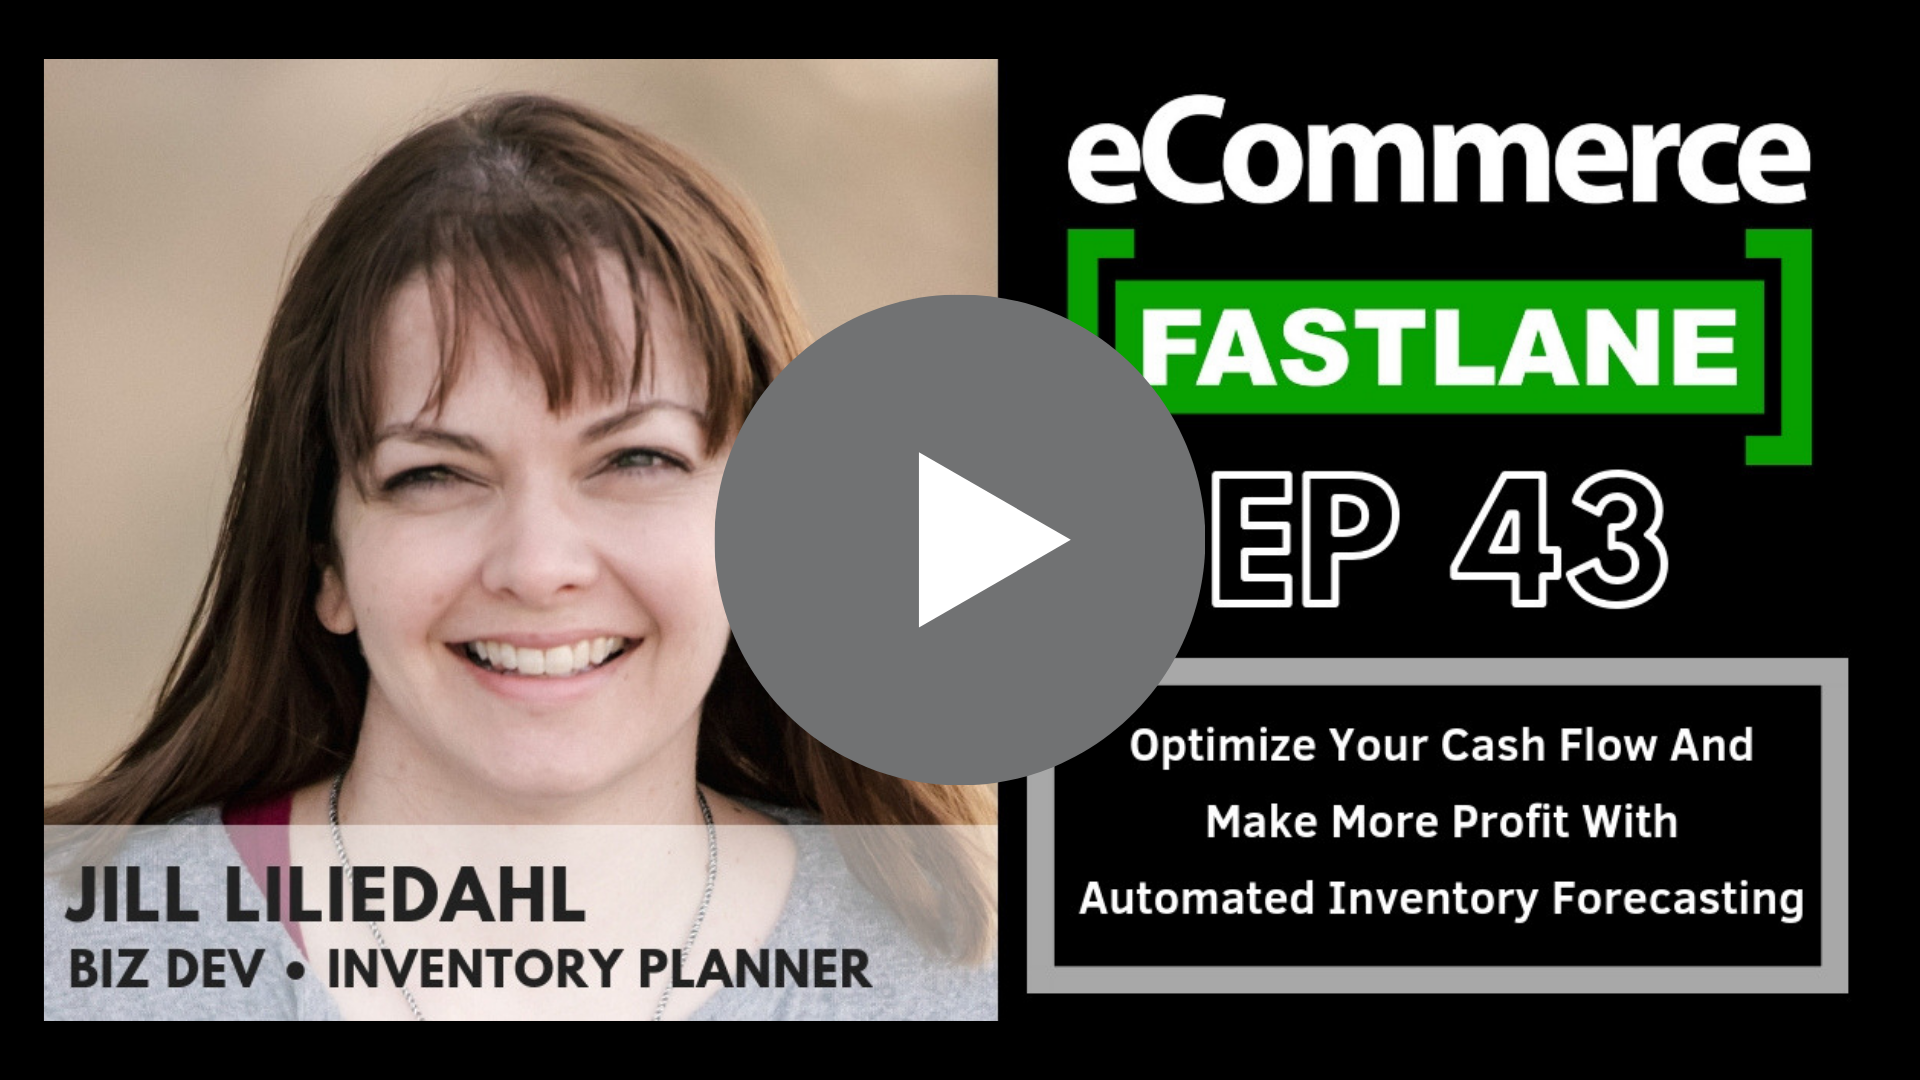 Listen to eCommerce Fastlane with Steve Hutt to hear more about optimizing your cash flow and making more profit with automated inventory forecasting